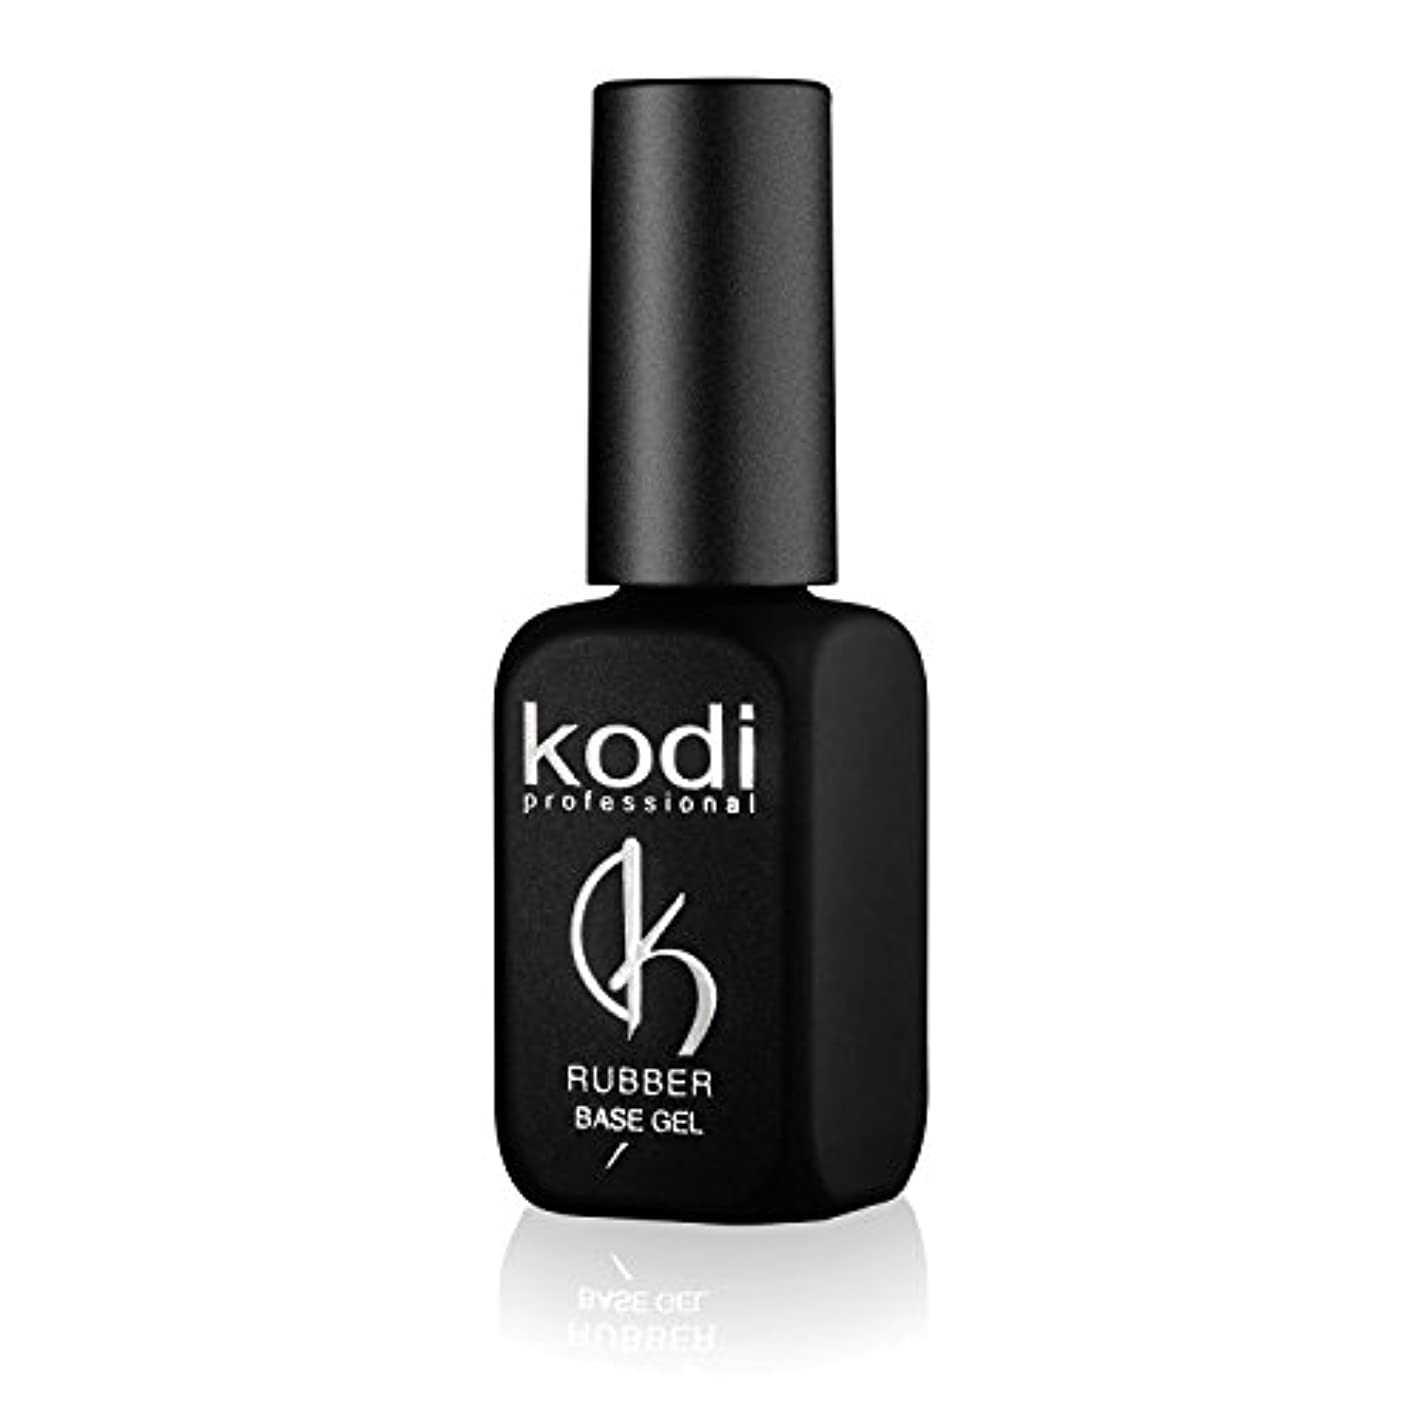 正直眠いですにんじんProfessional Rubber Base Gel By Kodi | 12ml 0.42 oz | Soak Off, Polish Fingernails Coat Gel | For Long Lasting Nails Layer | Easy To Use, Non-Toxic & Scentless | Cure Under LED Or UV Lamp